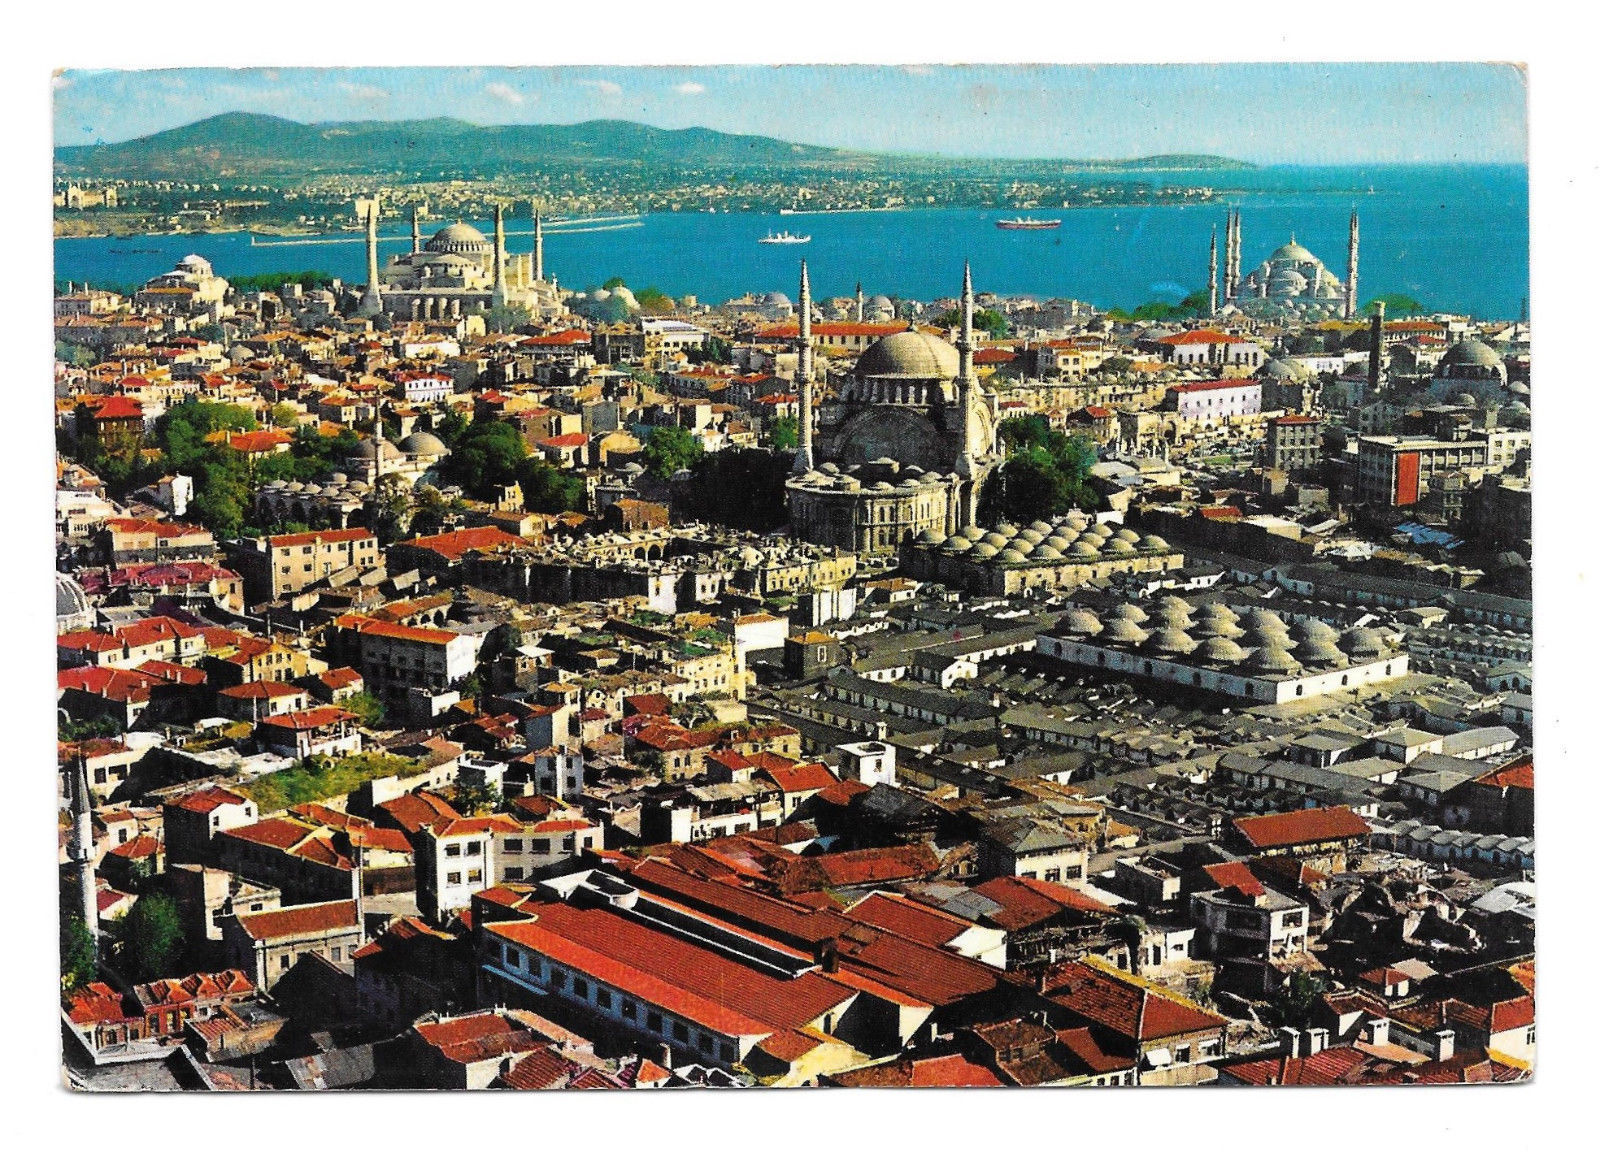 Turkey Istanbul Aerial View St Sophia Blue Mosque in Old City Vtg Postcard 4X6